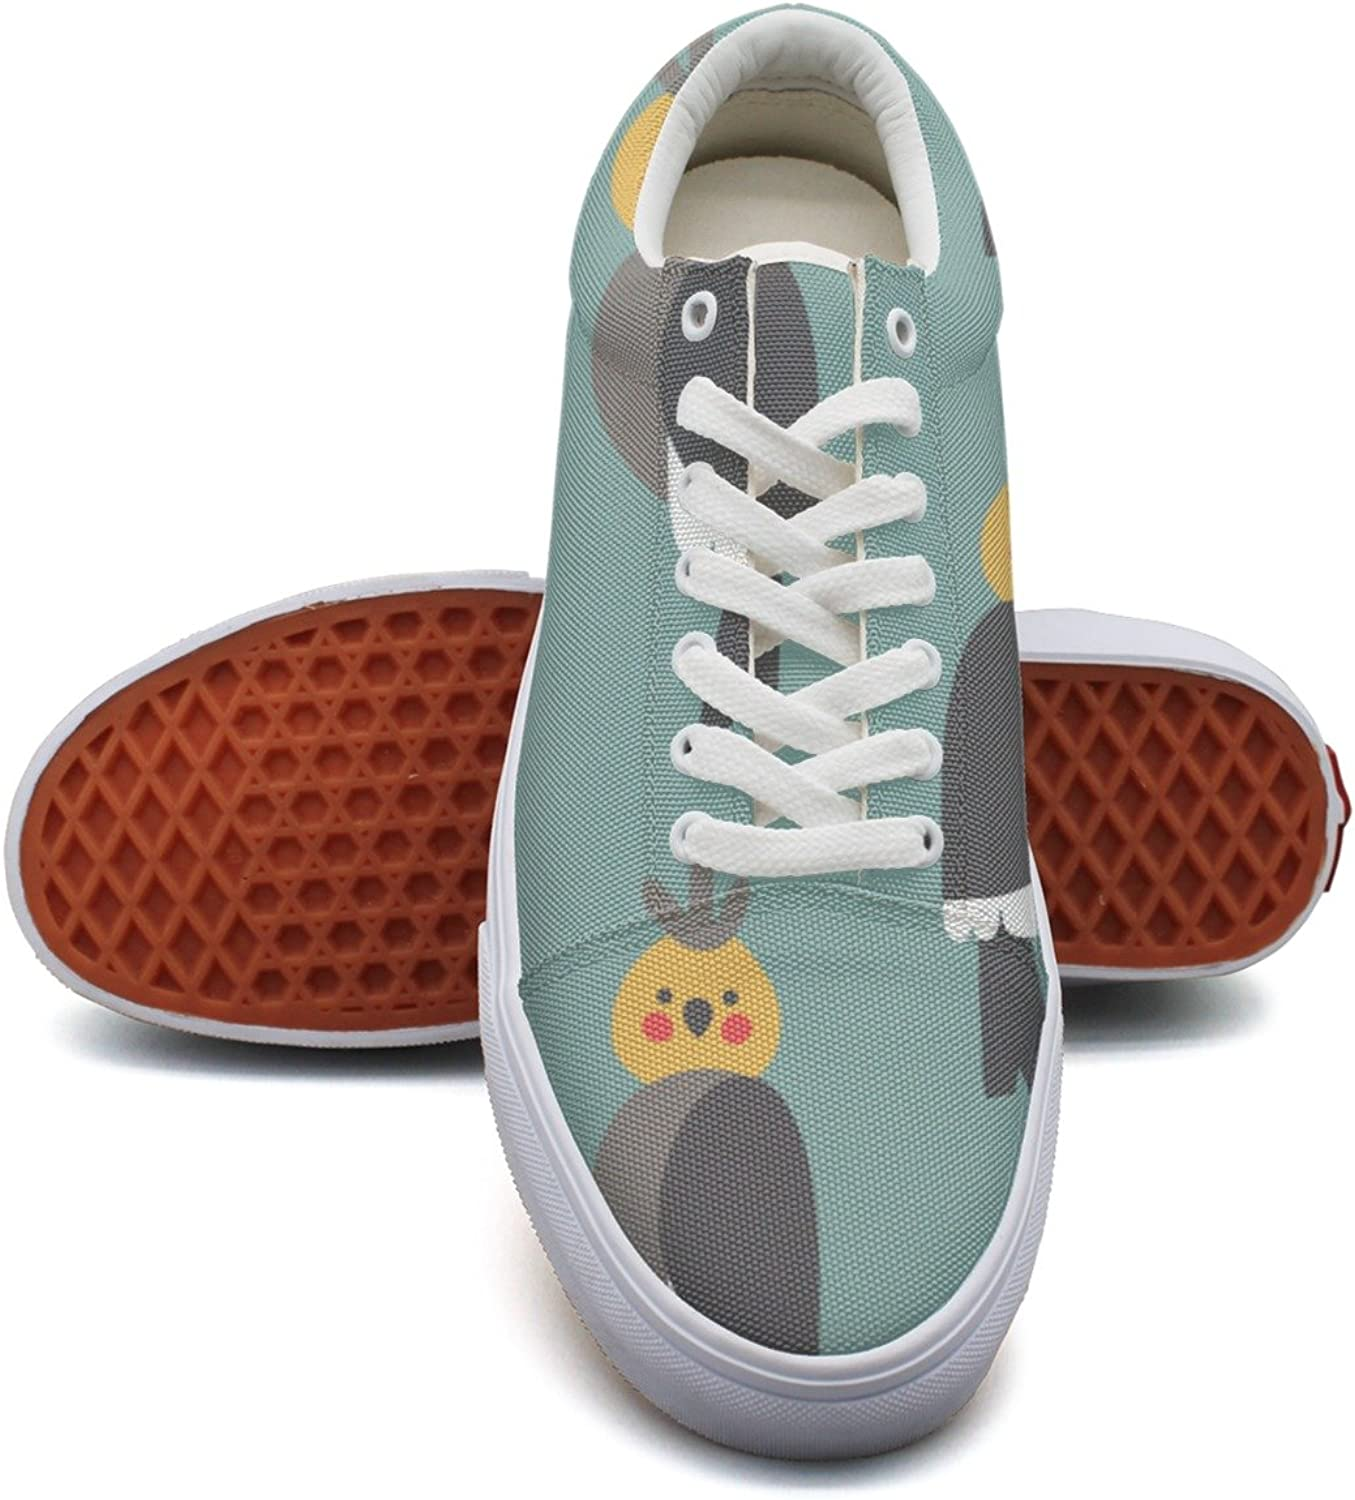 Feenfling Cute Cockatiels Pattern Womens Denim Canvas Sneakers Low Top Trendy Basketball shoes for Women